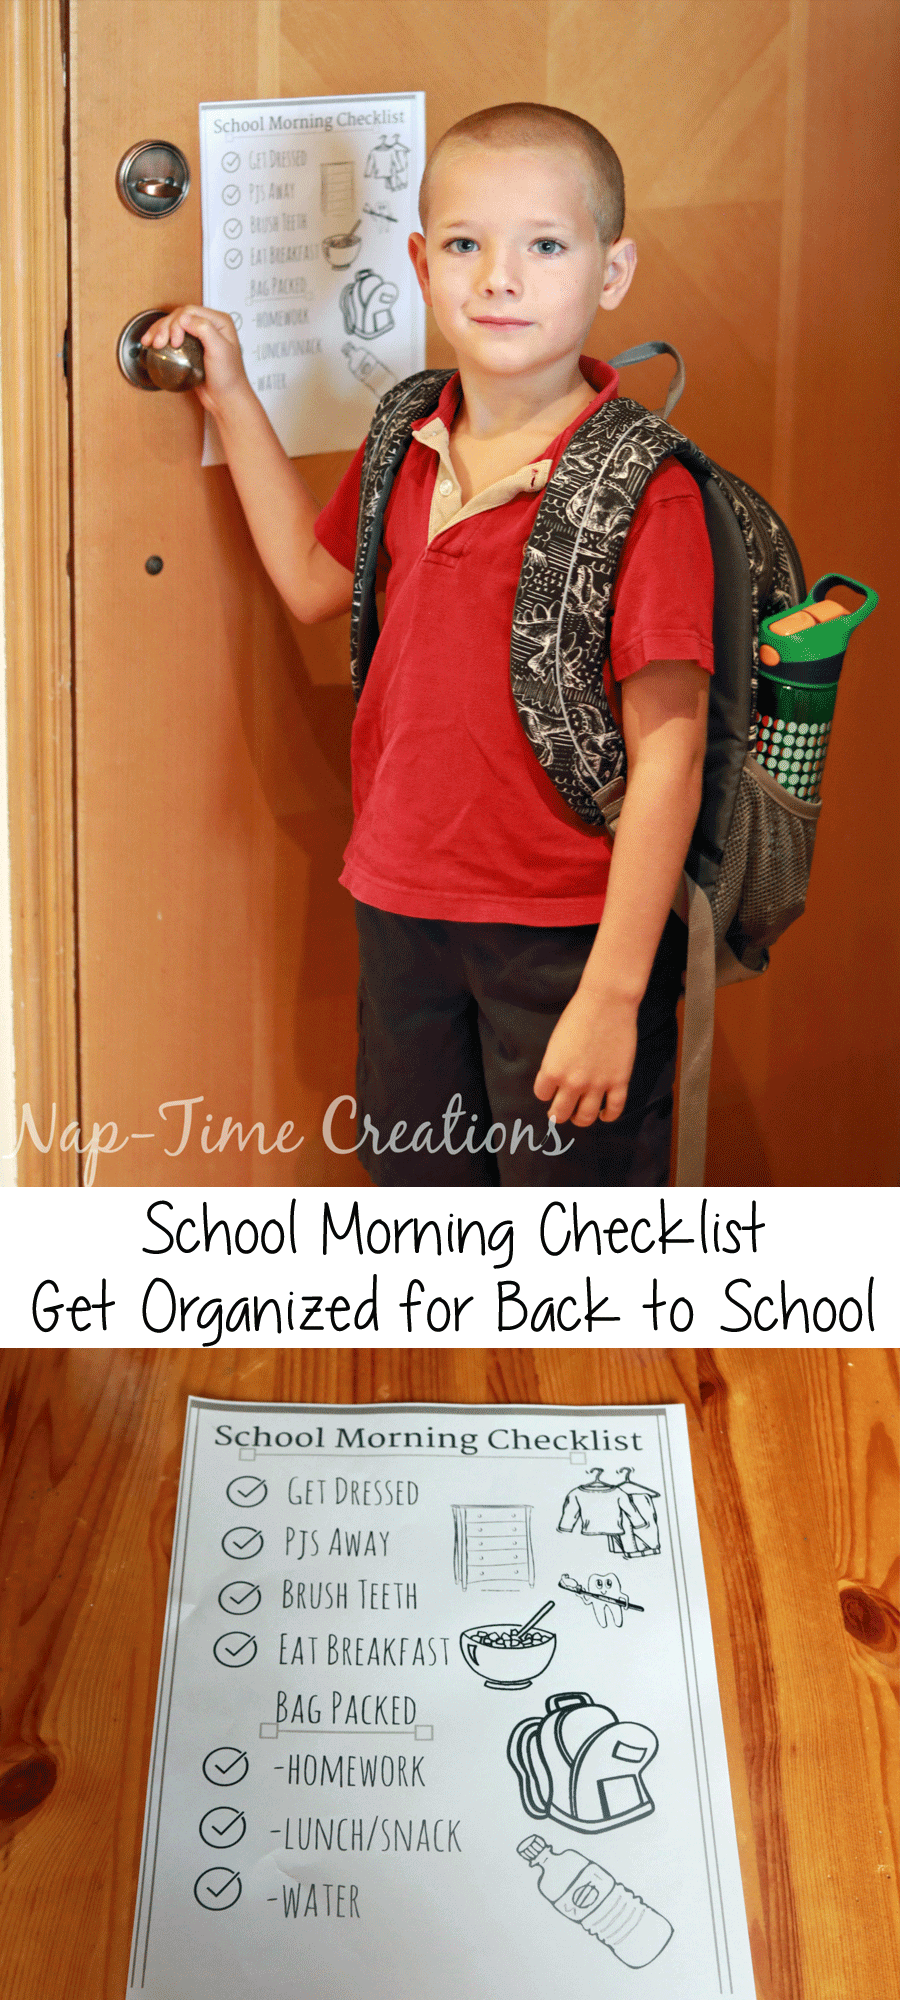 School-Morning-Checklist-Get-Organzied-for-Back-to-School-with-Nap-Time-Creations